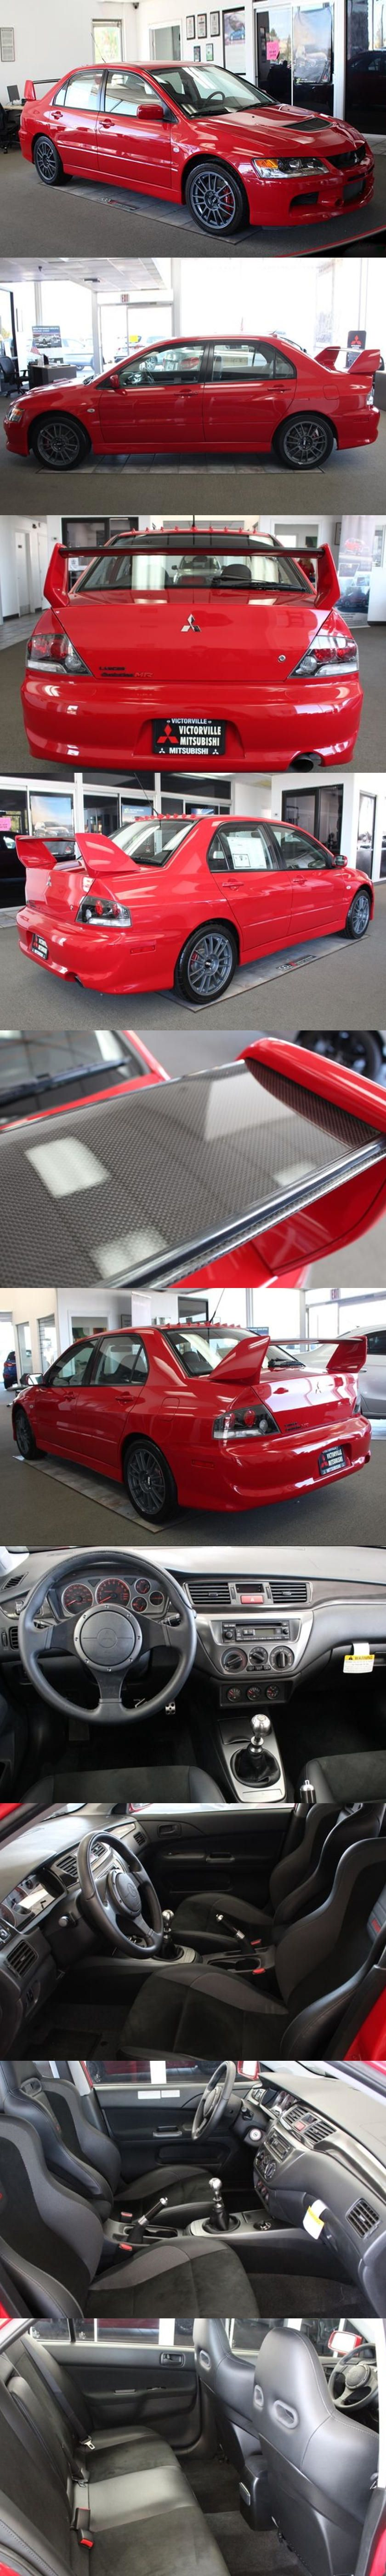 Hidden Treasure Brand New 2006 Mitsubishi Lancer Evolution Mr Edition And It Costs How Much Mitsubishi Lancer Evolution Mitsubishi Lancer Mitsubishi